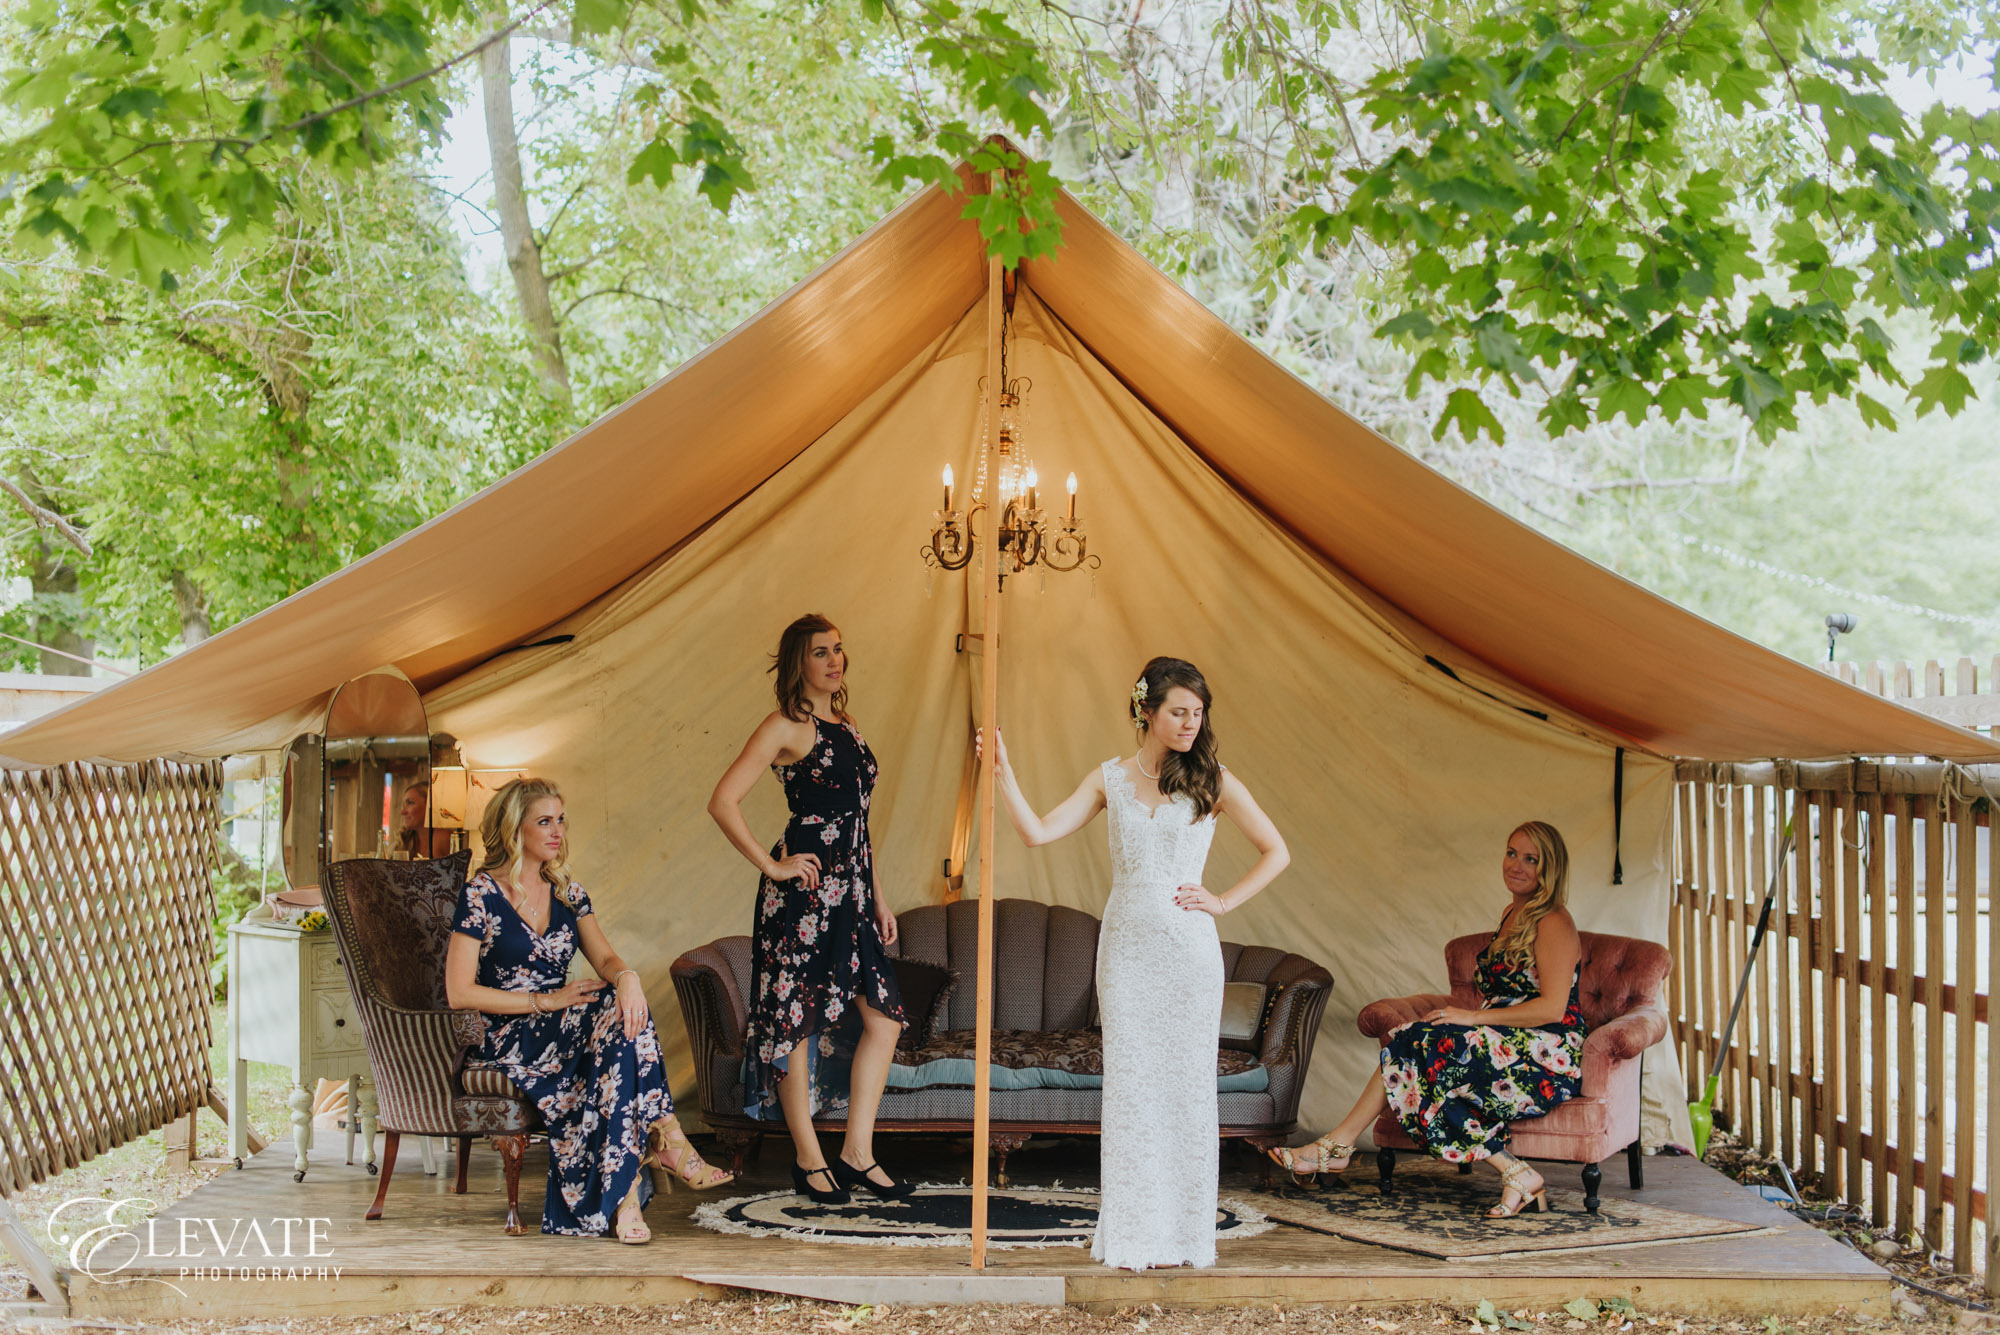 bridesmaids wedding tent